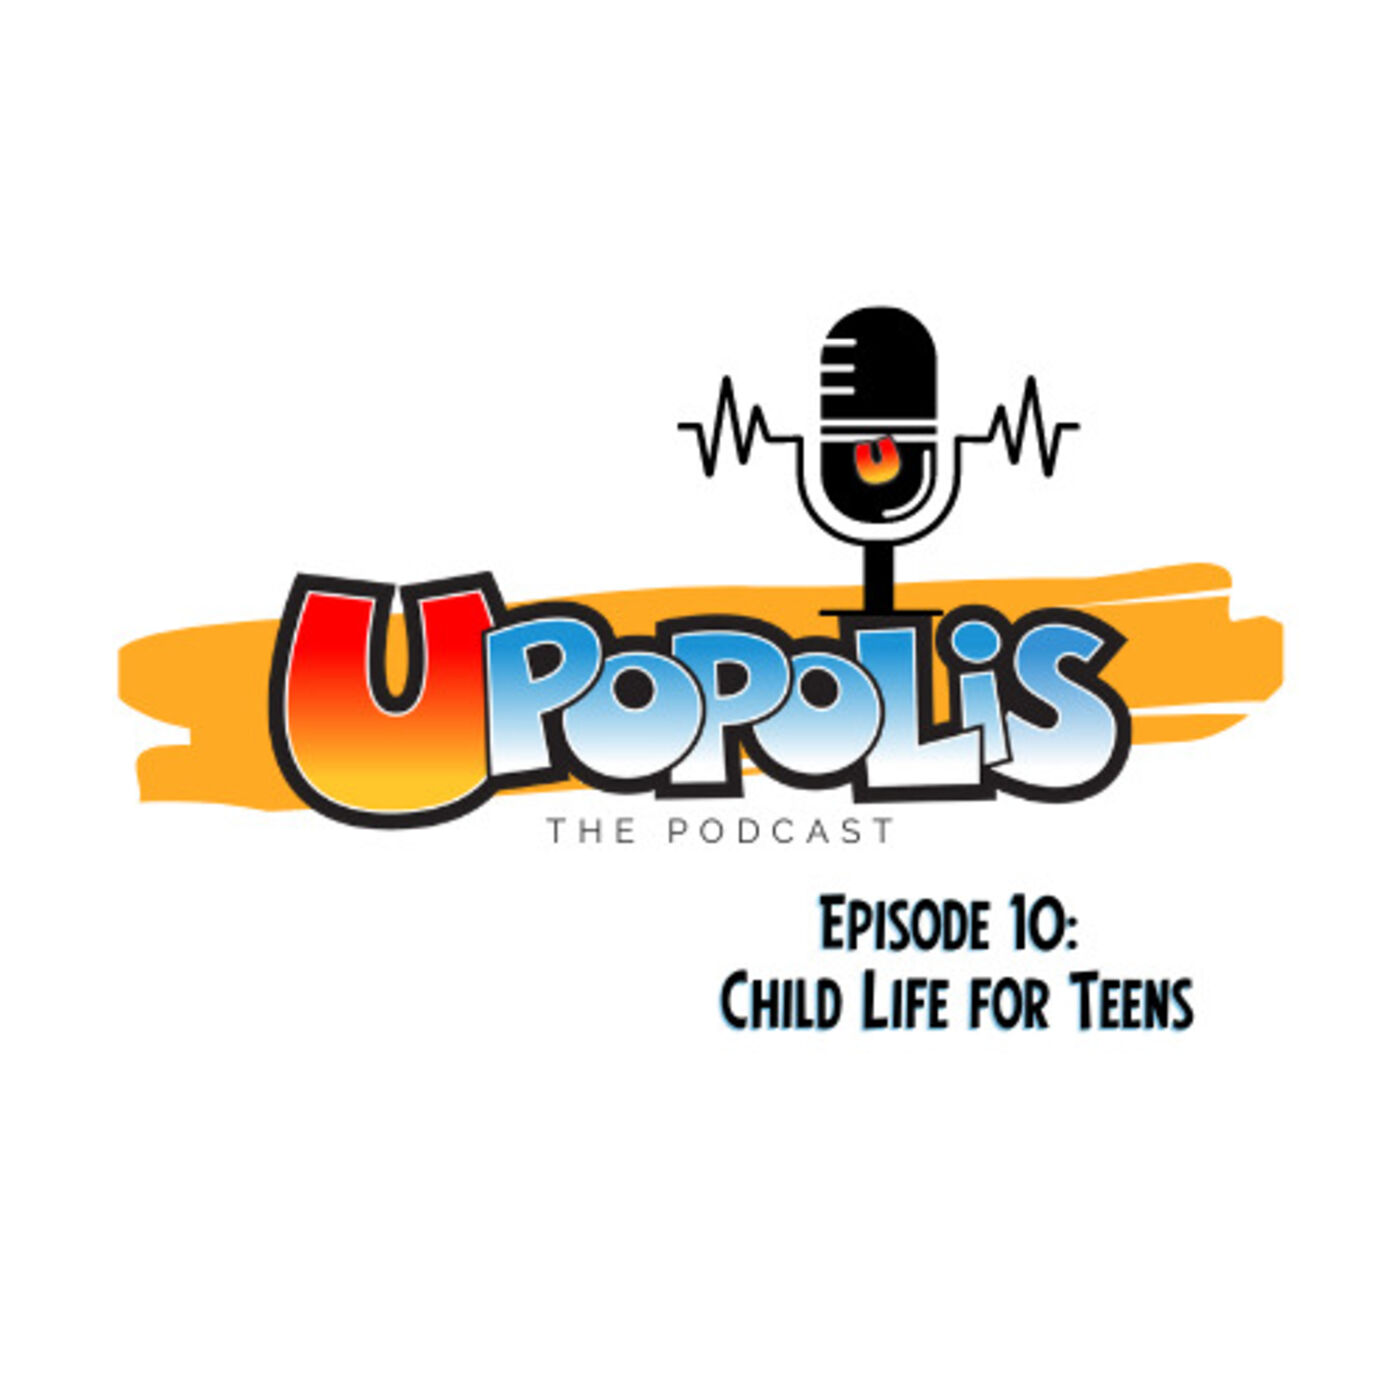 Episode 10: Child Life for Teens